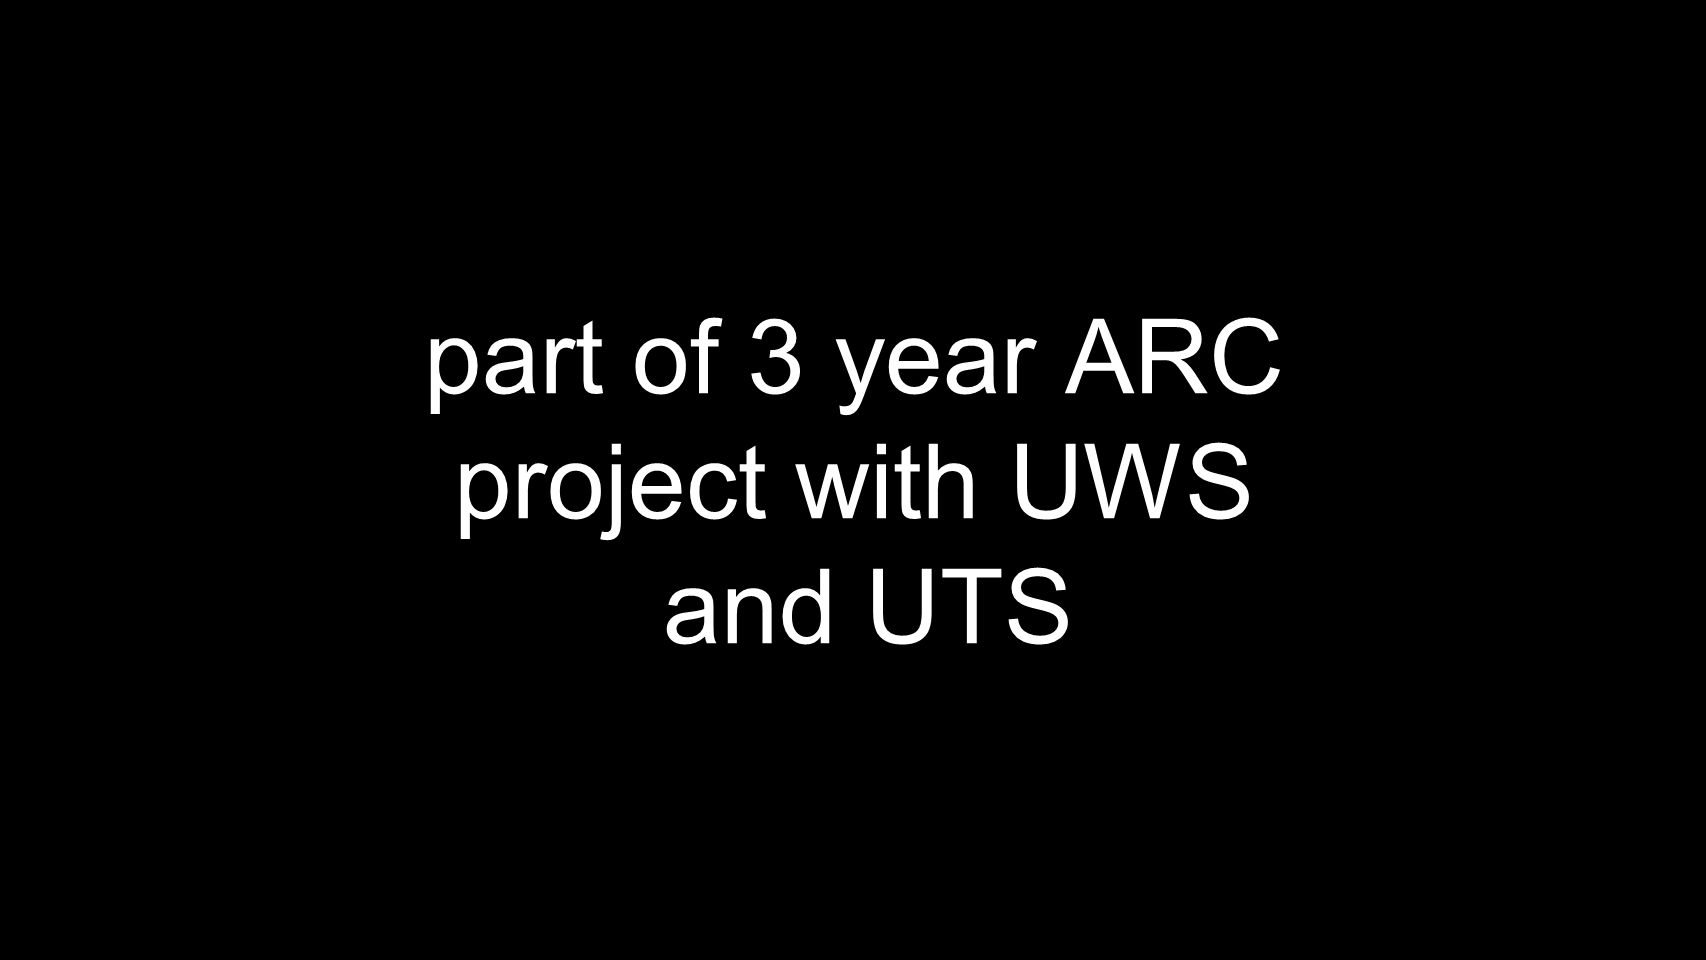 part of 3 year ARC project with UWS and UTS